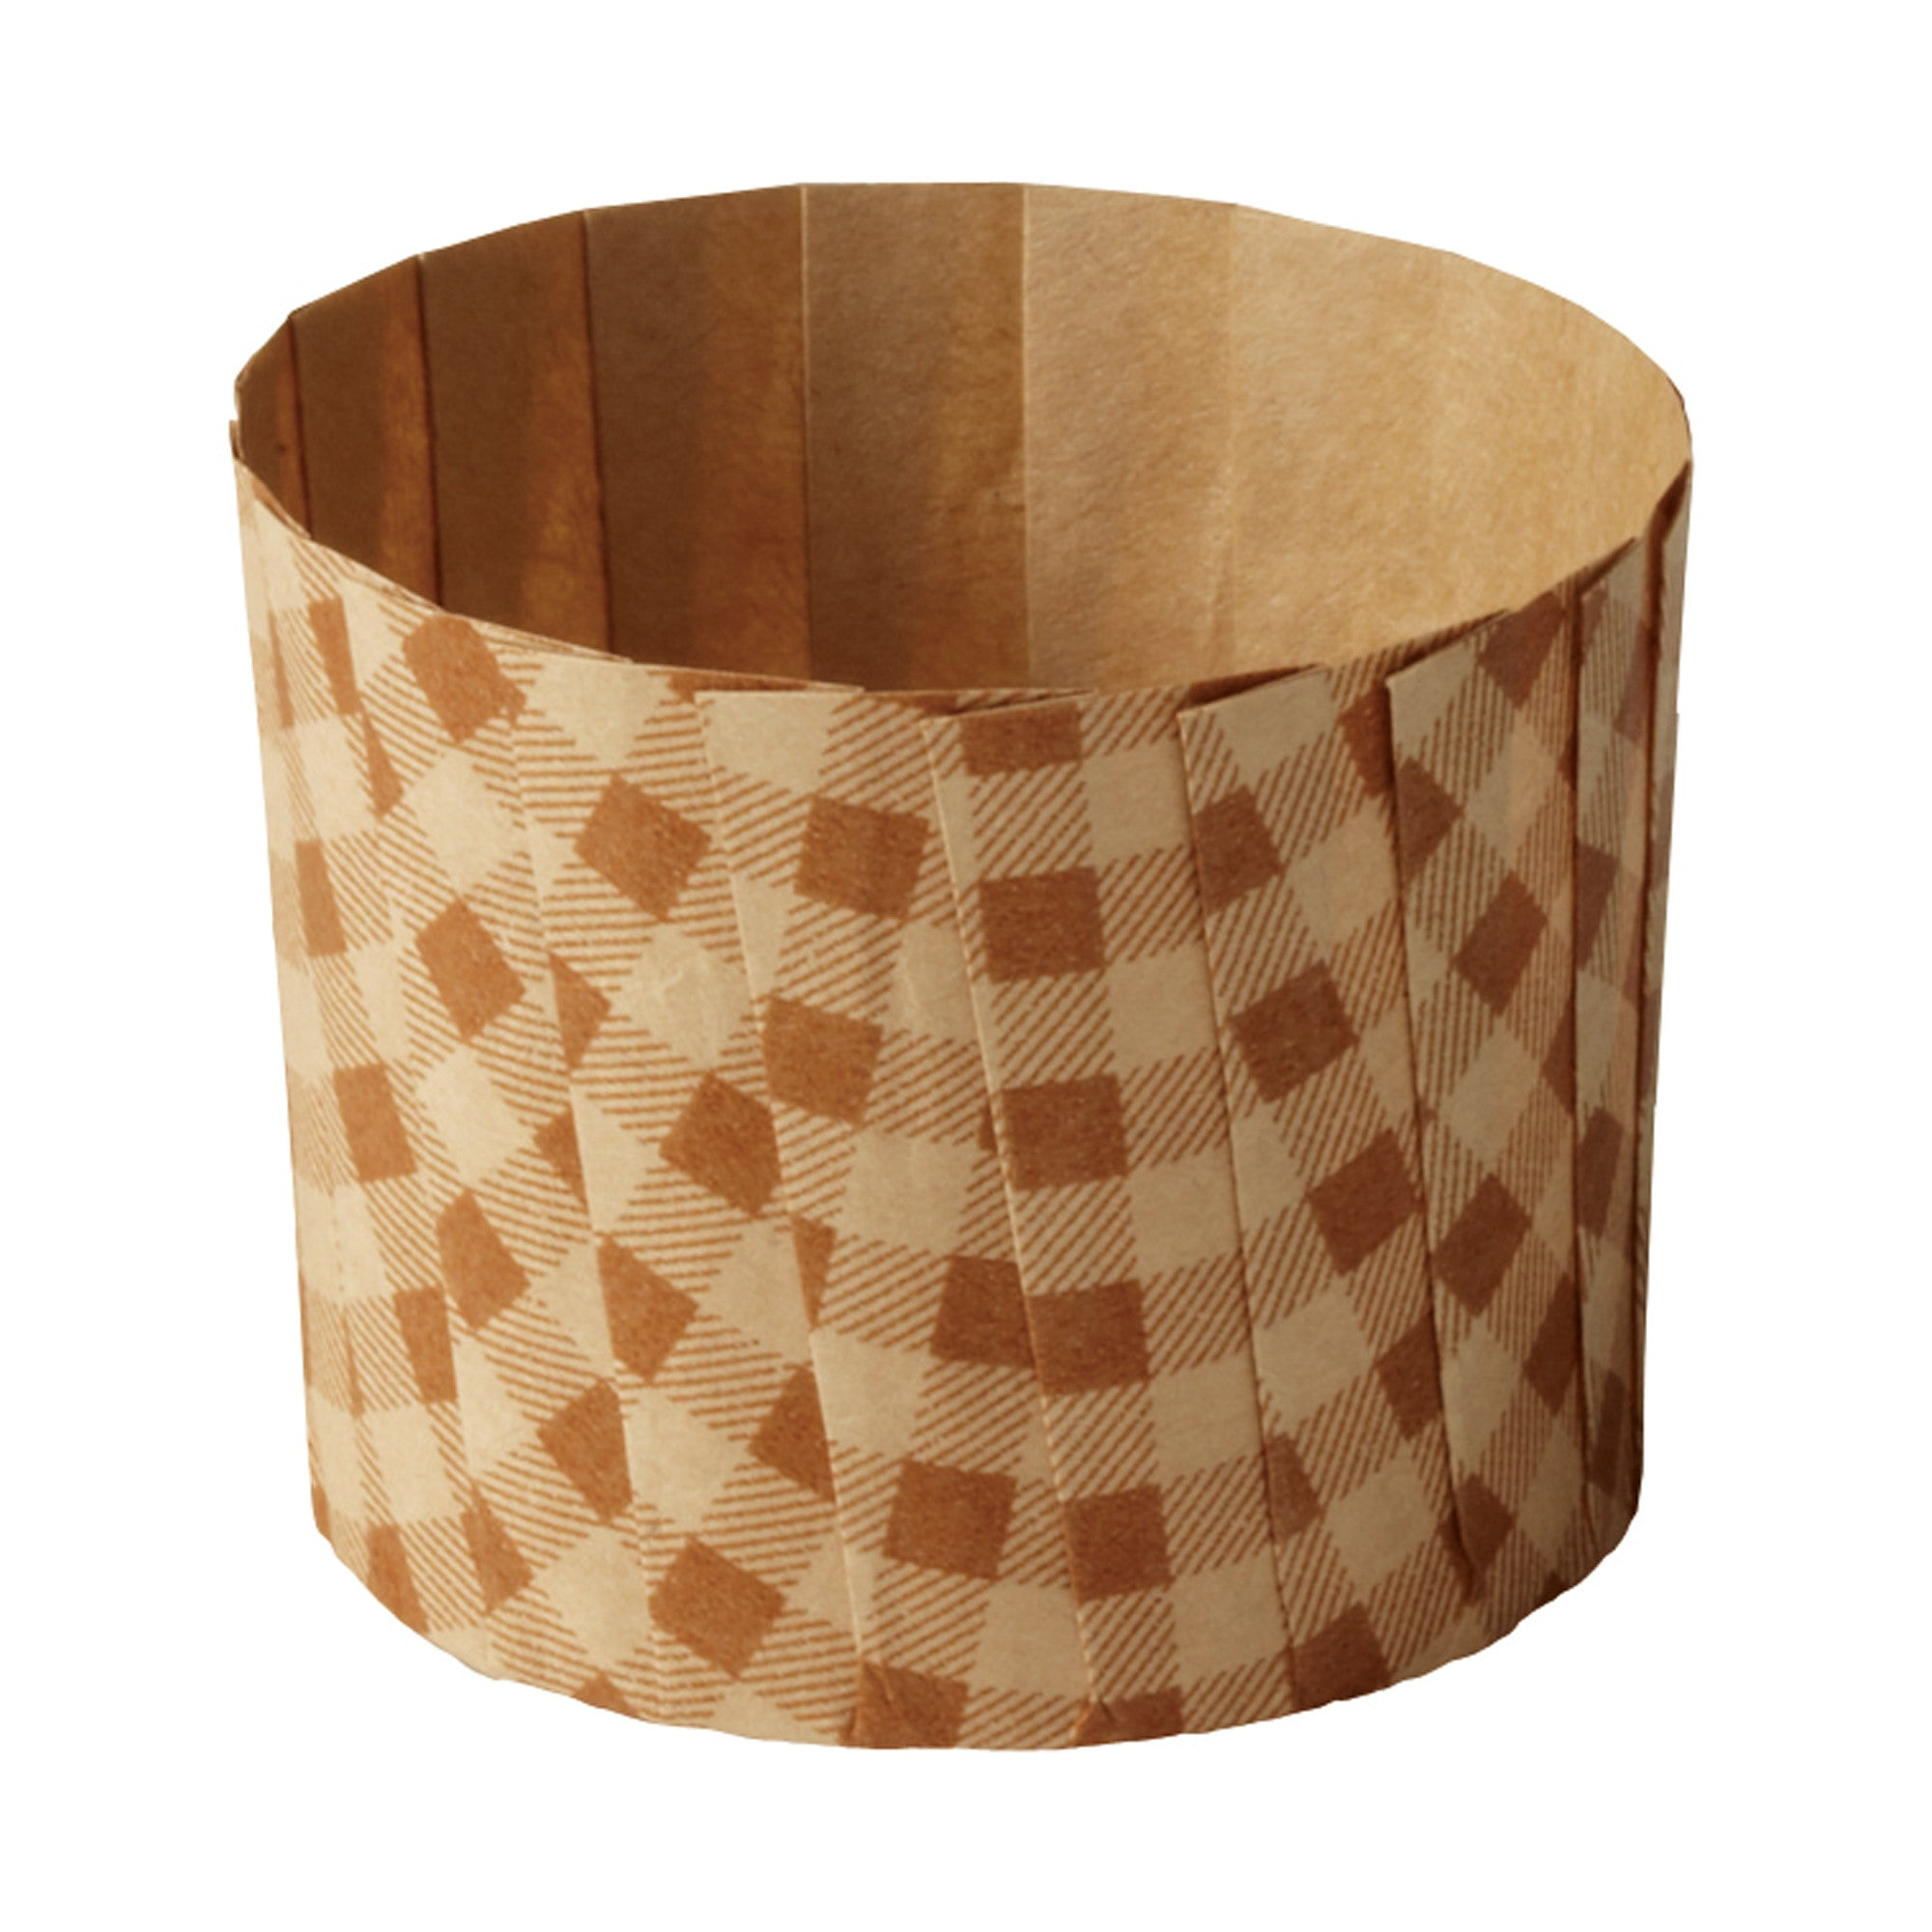 Pleated Baking Cups, M110 - Welcome Home Brands